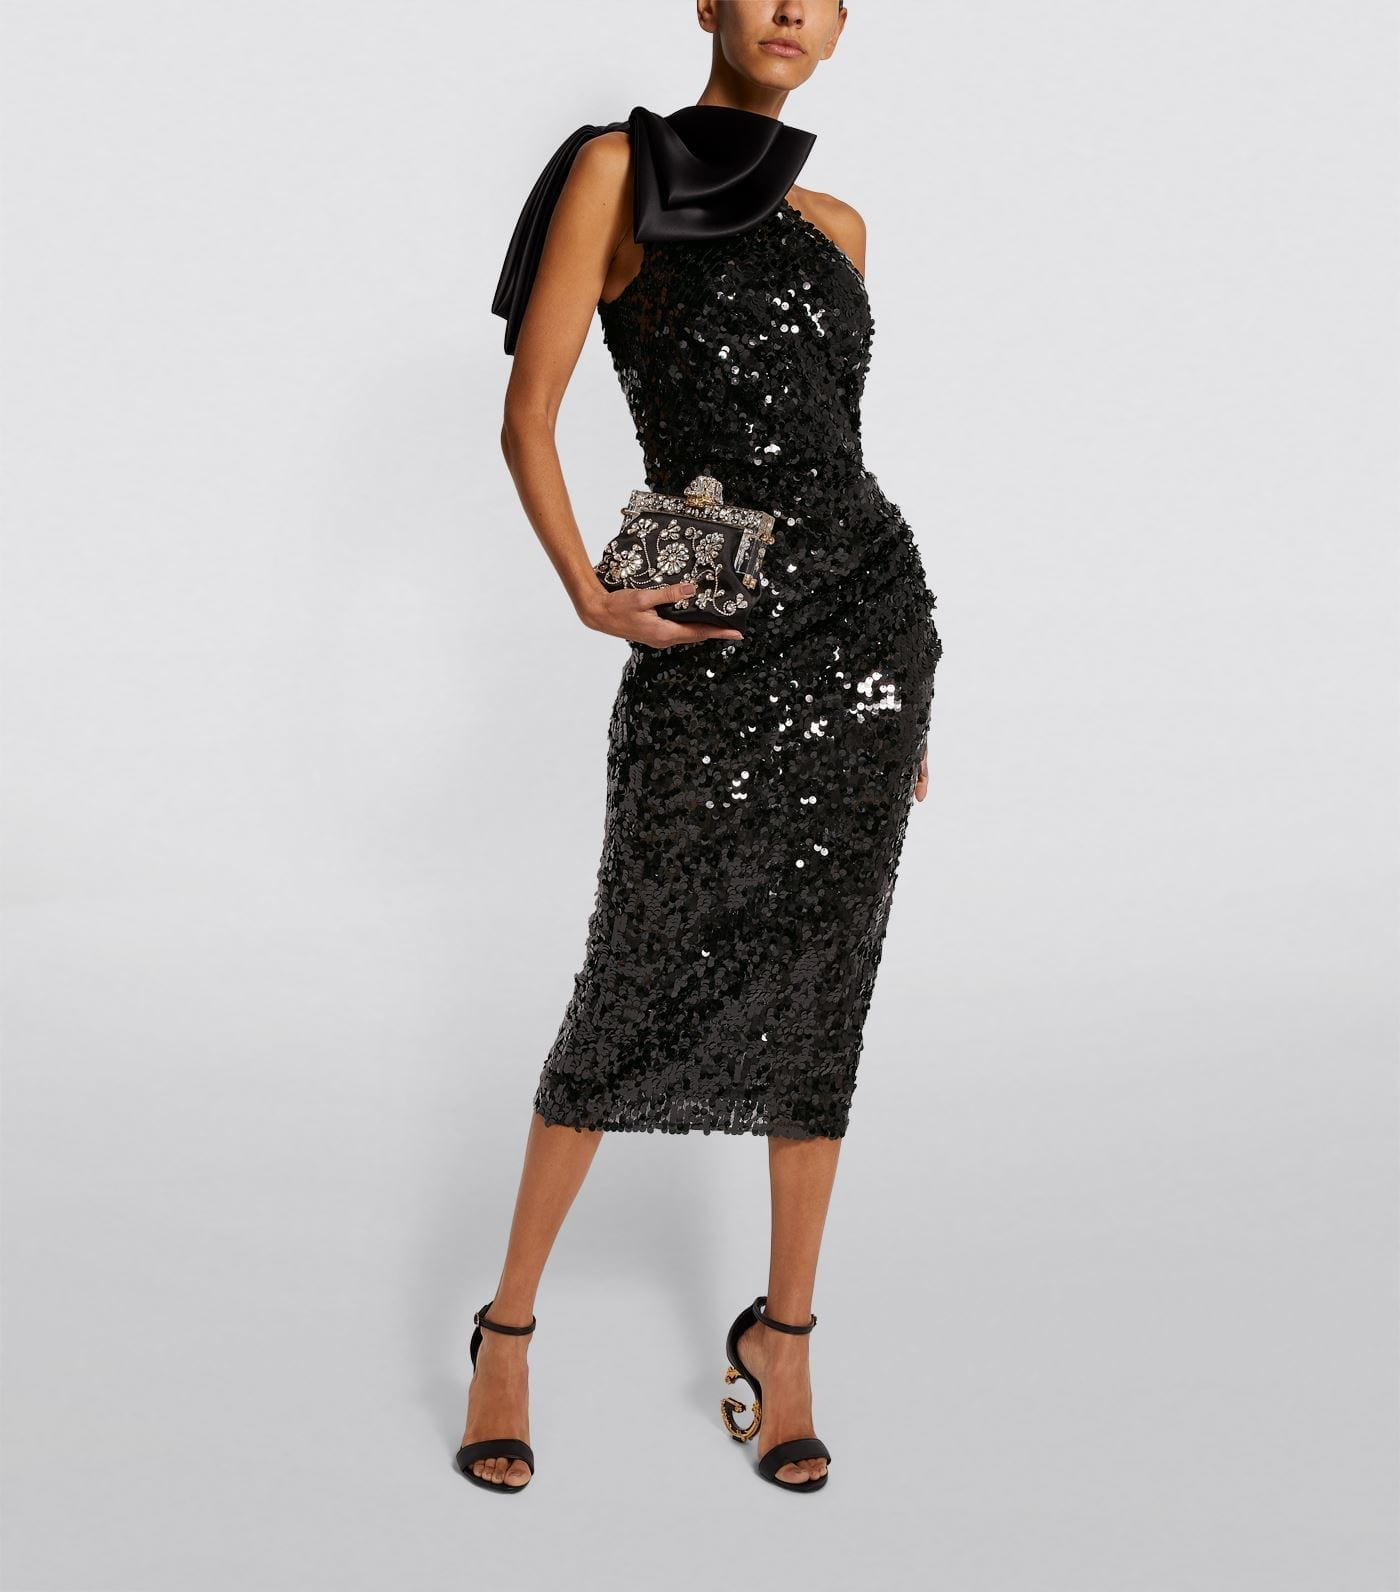 DOLCE & GABBANA Sequin Bow Shoulder Dress